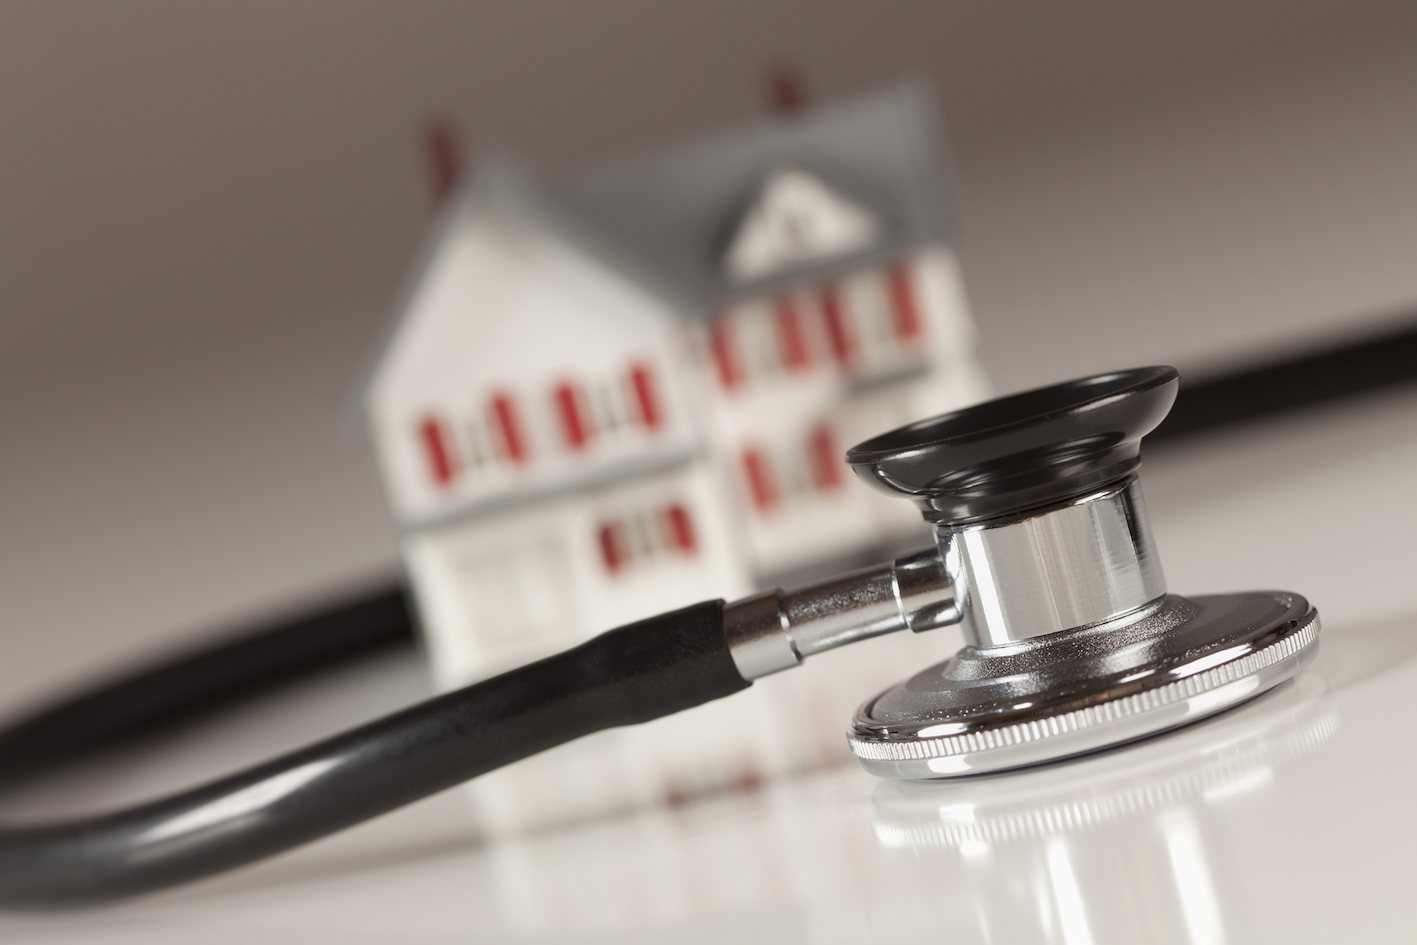 030P - House and Stethoscope - Resize a.jpg